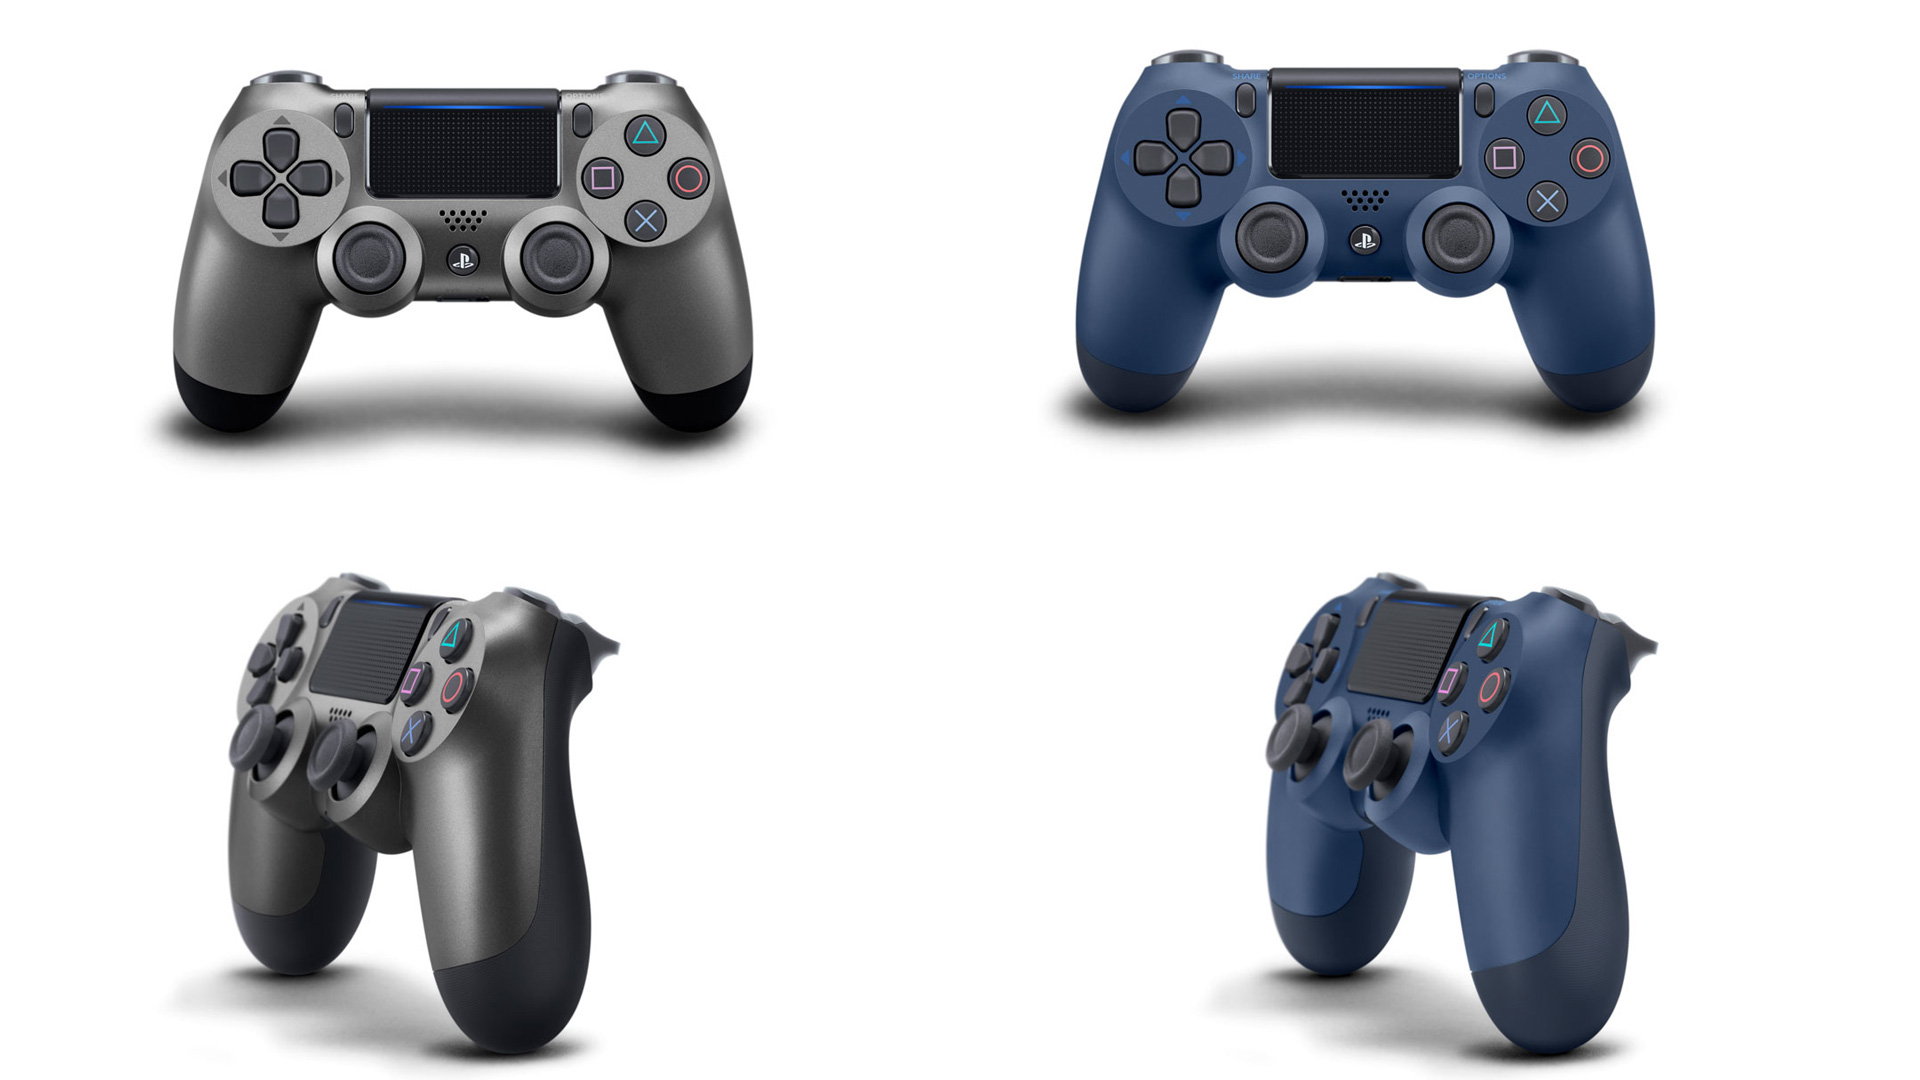 http://www.idgtv.es/archivos/201803/dualshock-4-steel-black-midnight-blue.jpg